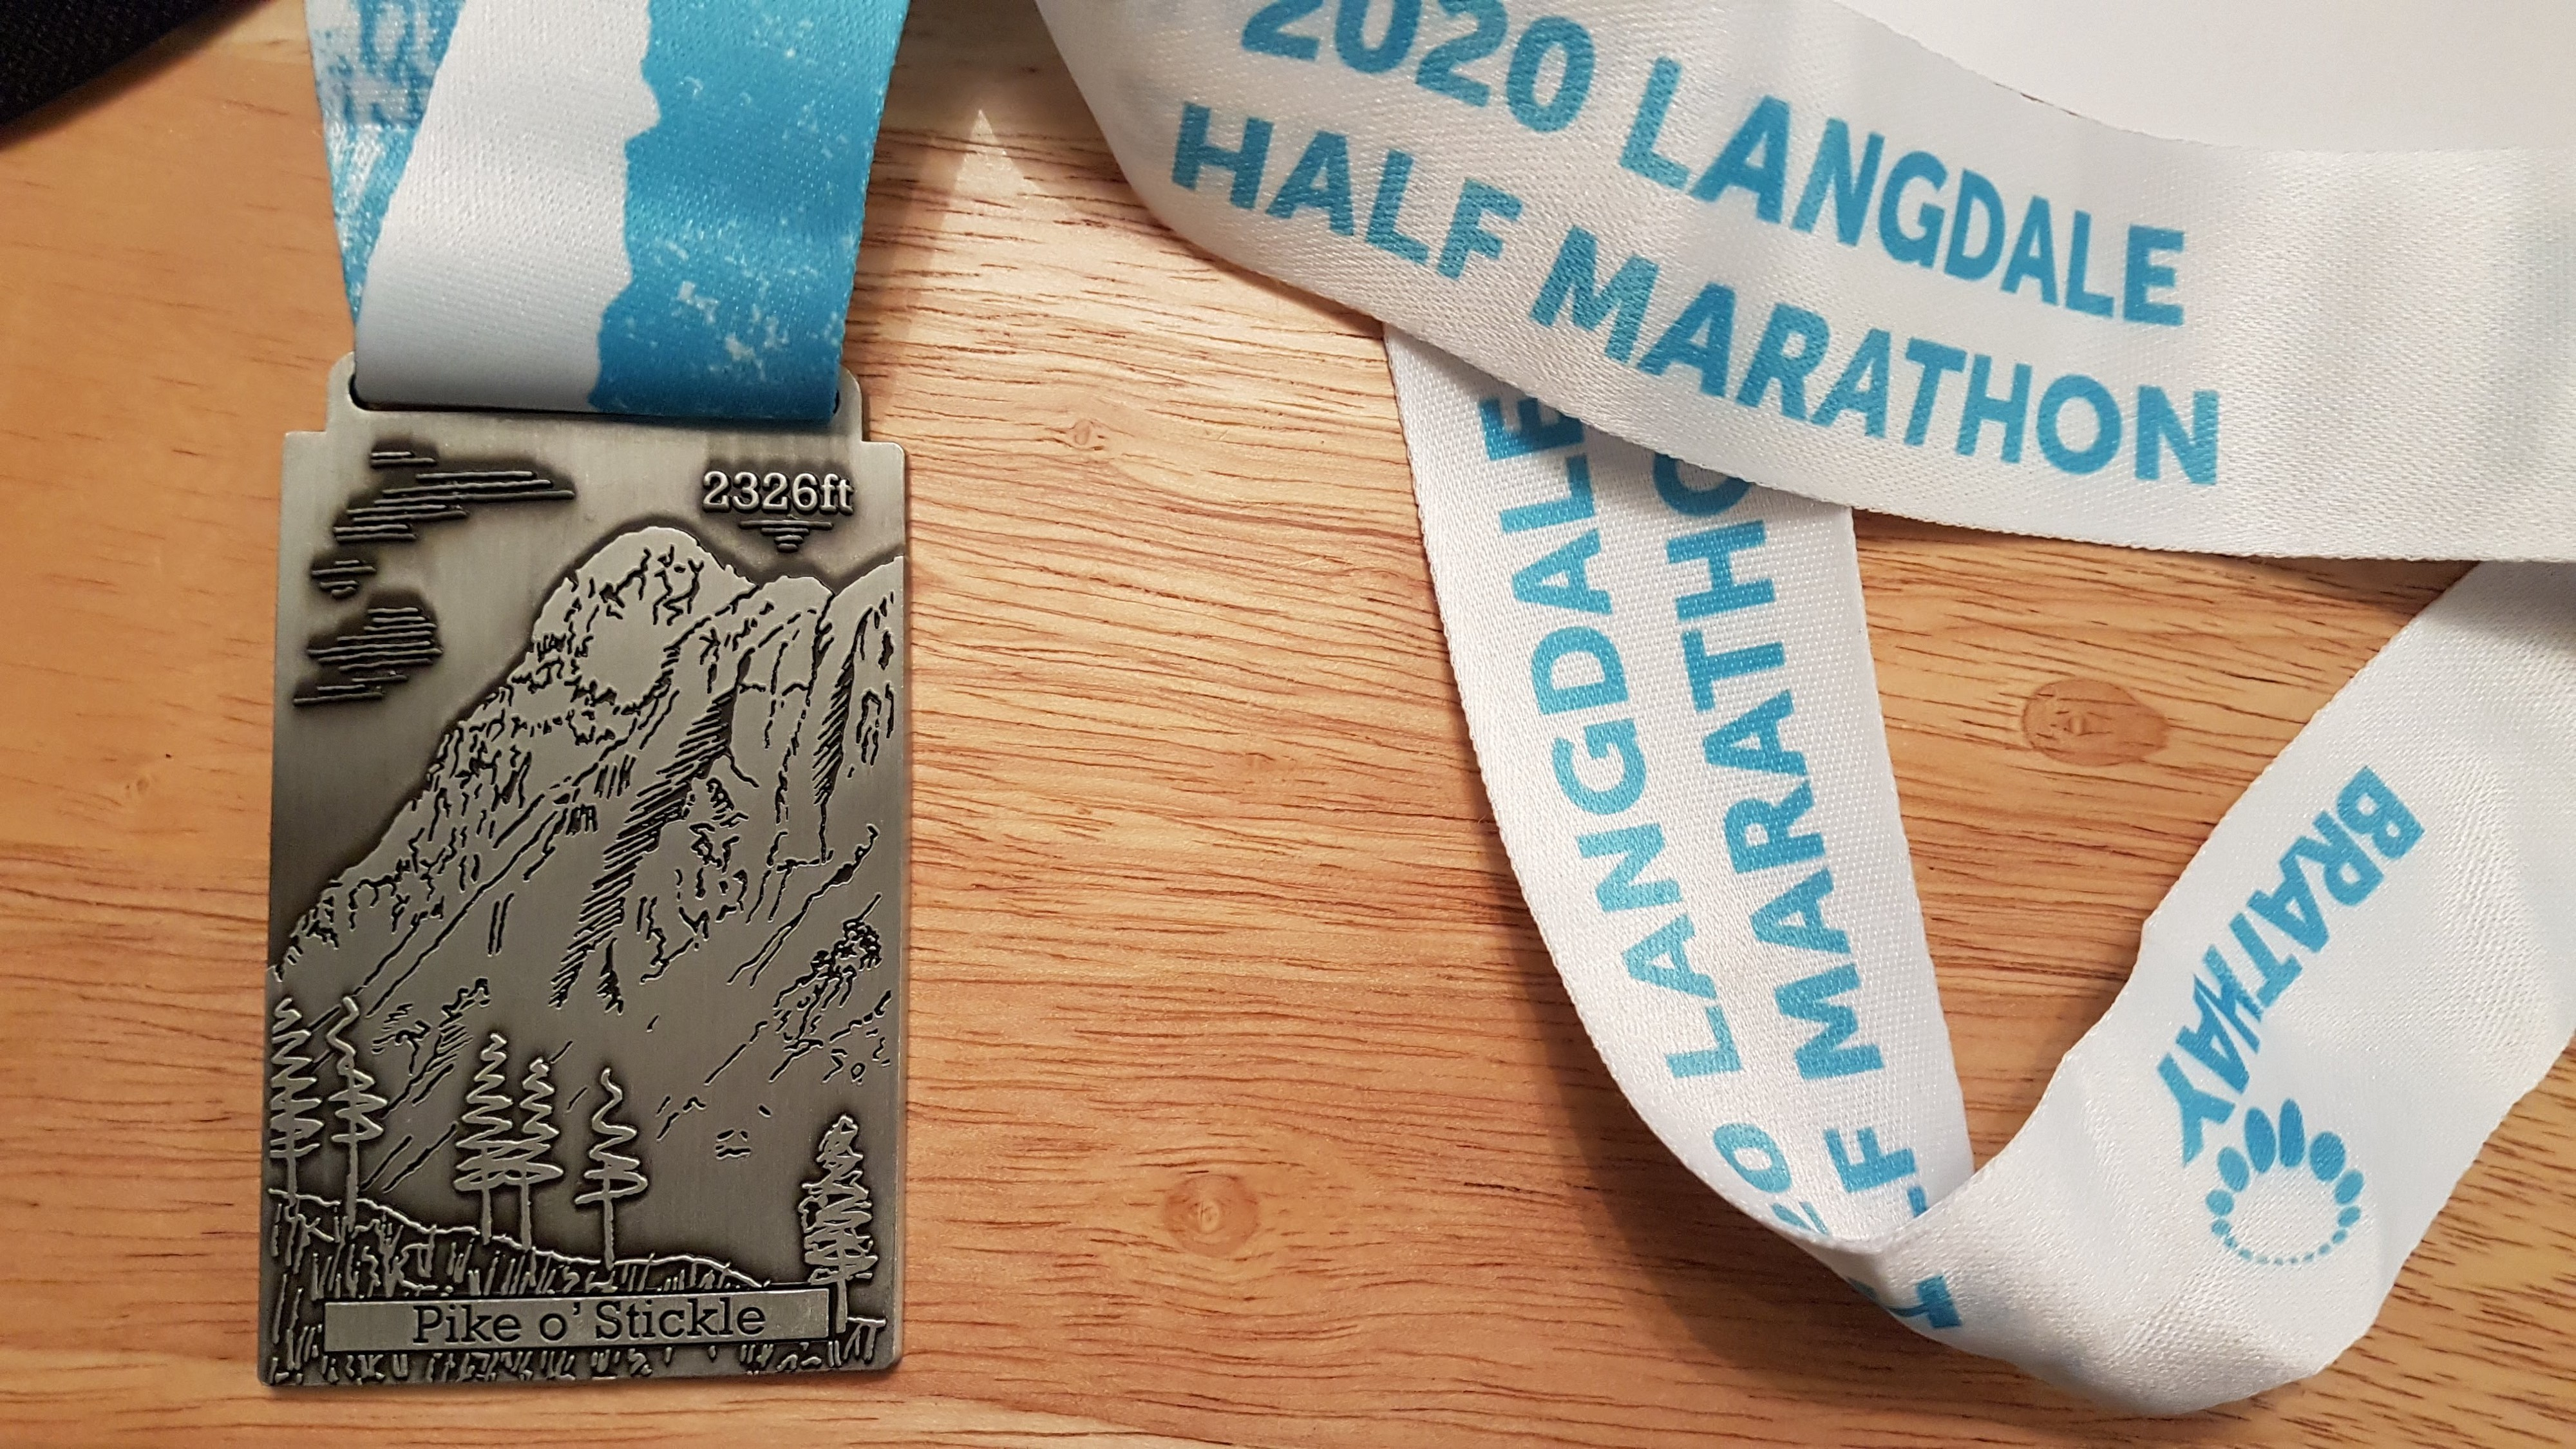 A rectangular medal showing a relief of Pike O'Stickle on a blue and white 2020 Langdale Half Marathon ribbon.